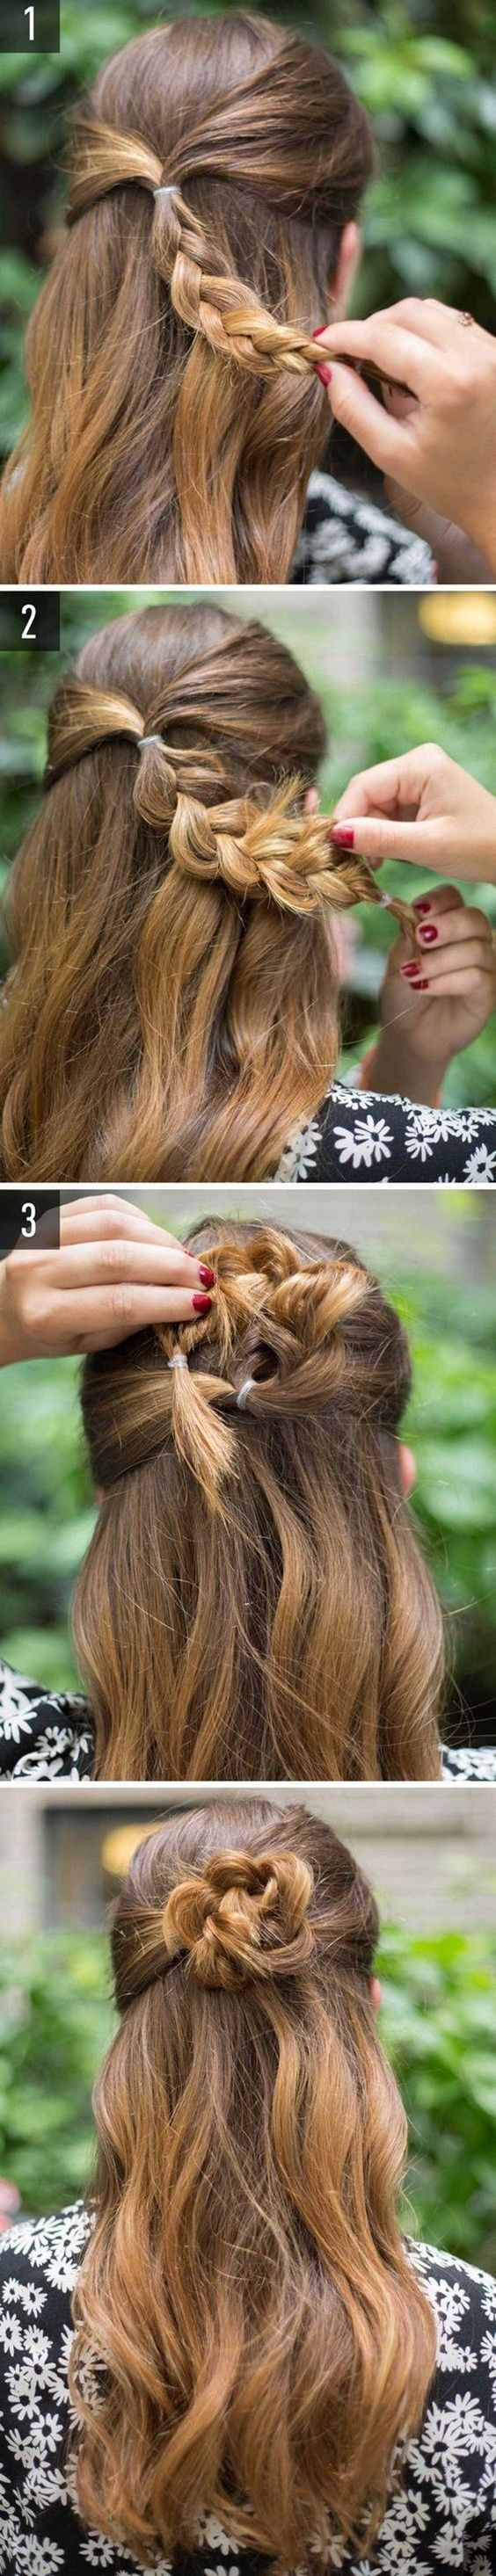 40 Easy Hairstyles for Schools to Try in 2017. Quick, Easy, Cute and Simple Step By Step Girls and Teens Hairstyles for Back to School. Great For Medium Hair, Short, Curly, Messy or Formal Looks. Great For the Lazy Girl Too!! #braidedhairstylesstepbystep